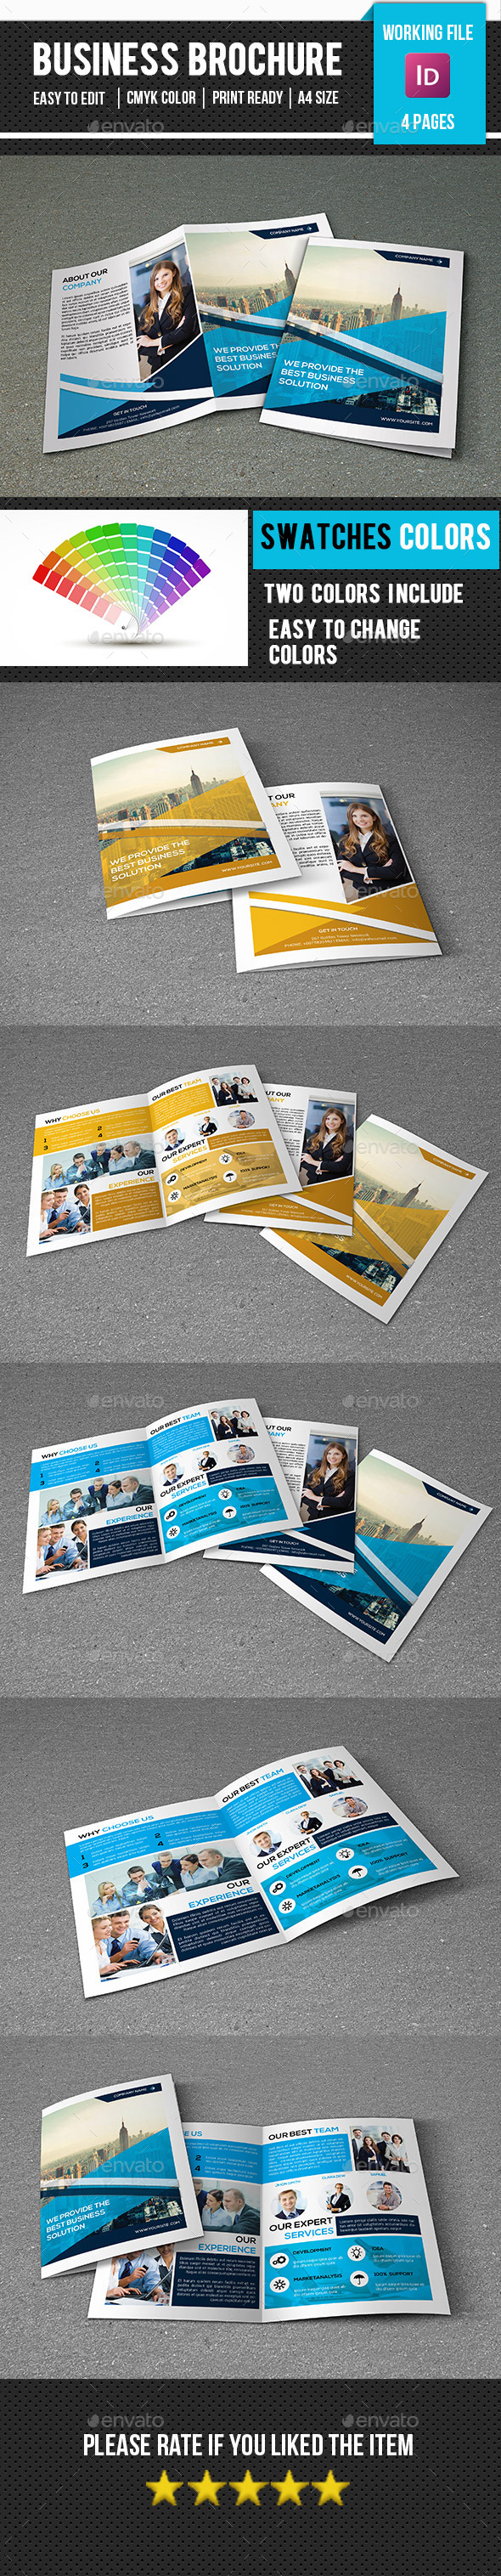 Corporate Brochure Template-V274 - Corporate Brochures